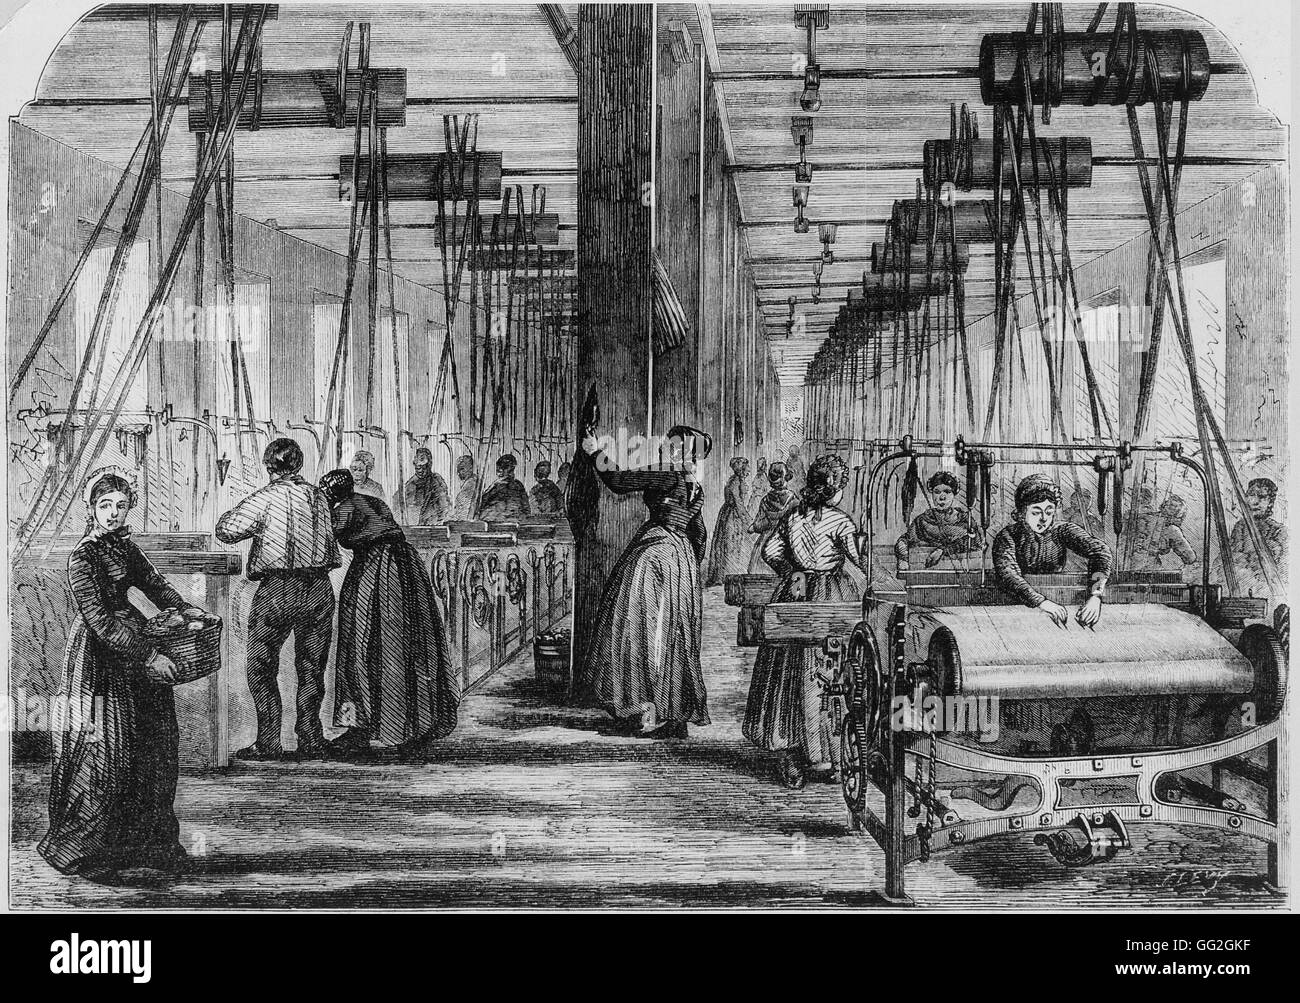 Women Working In A Textile Mill In The Vosges Region